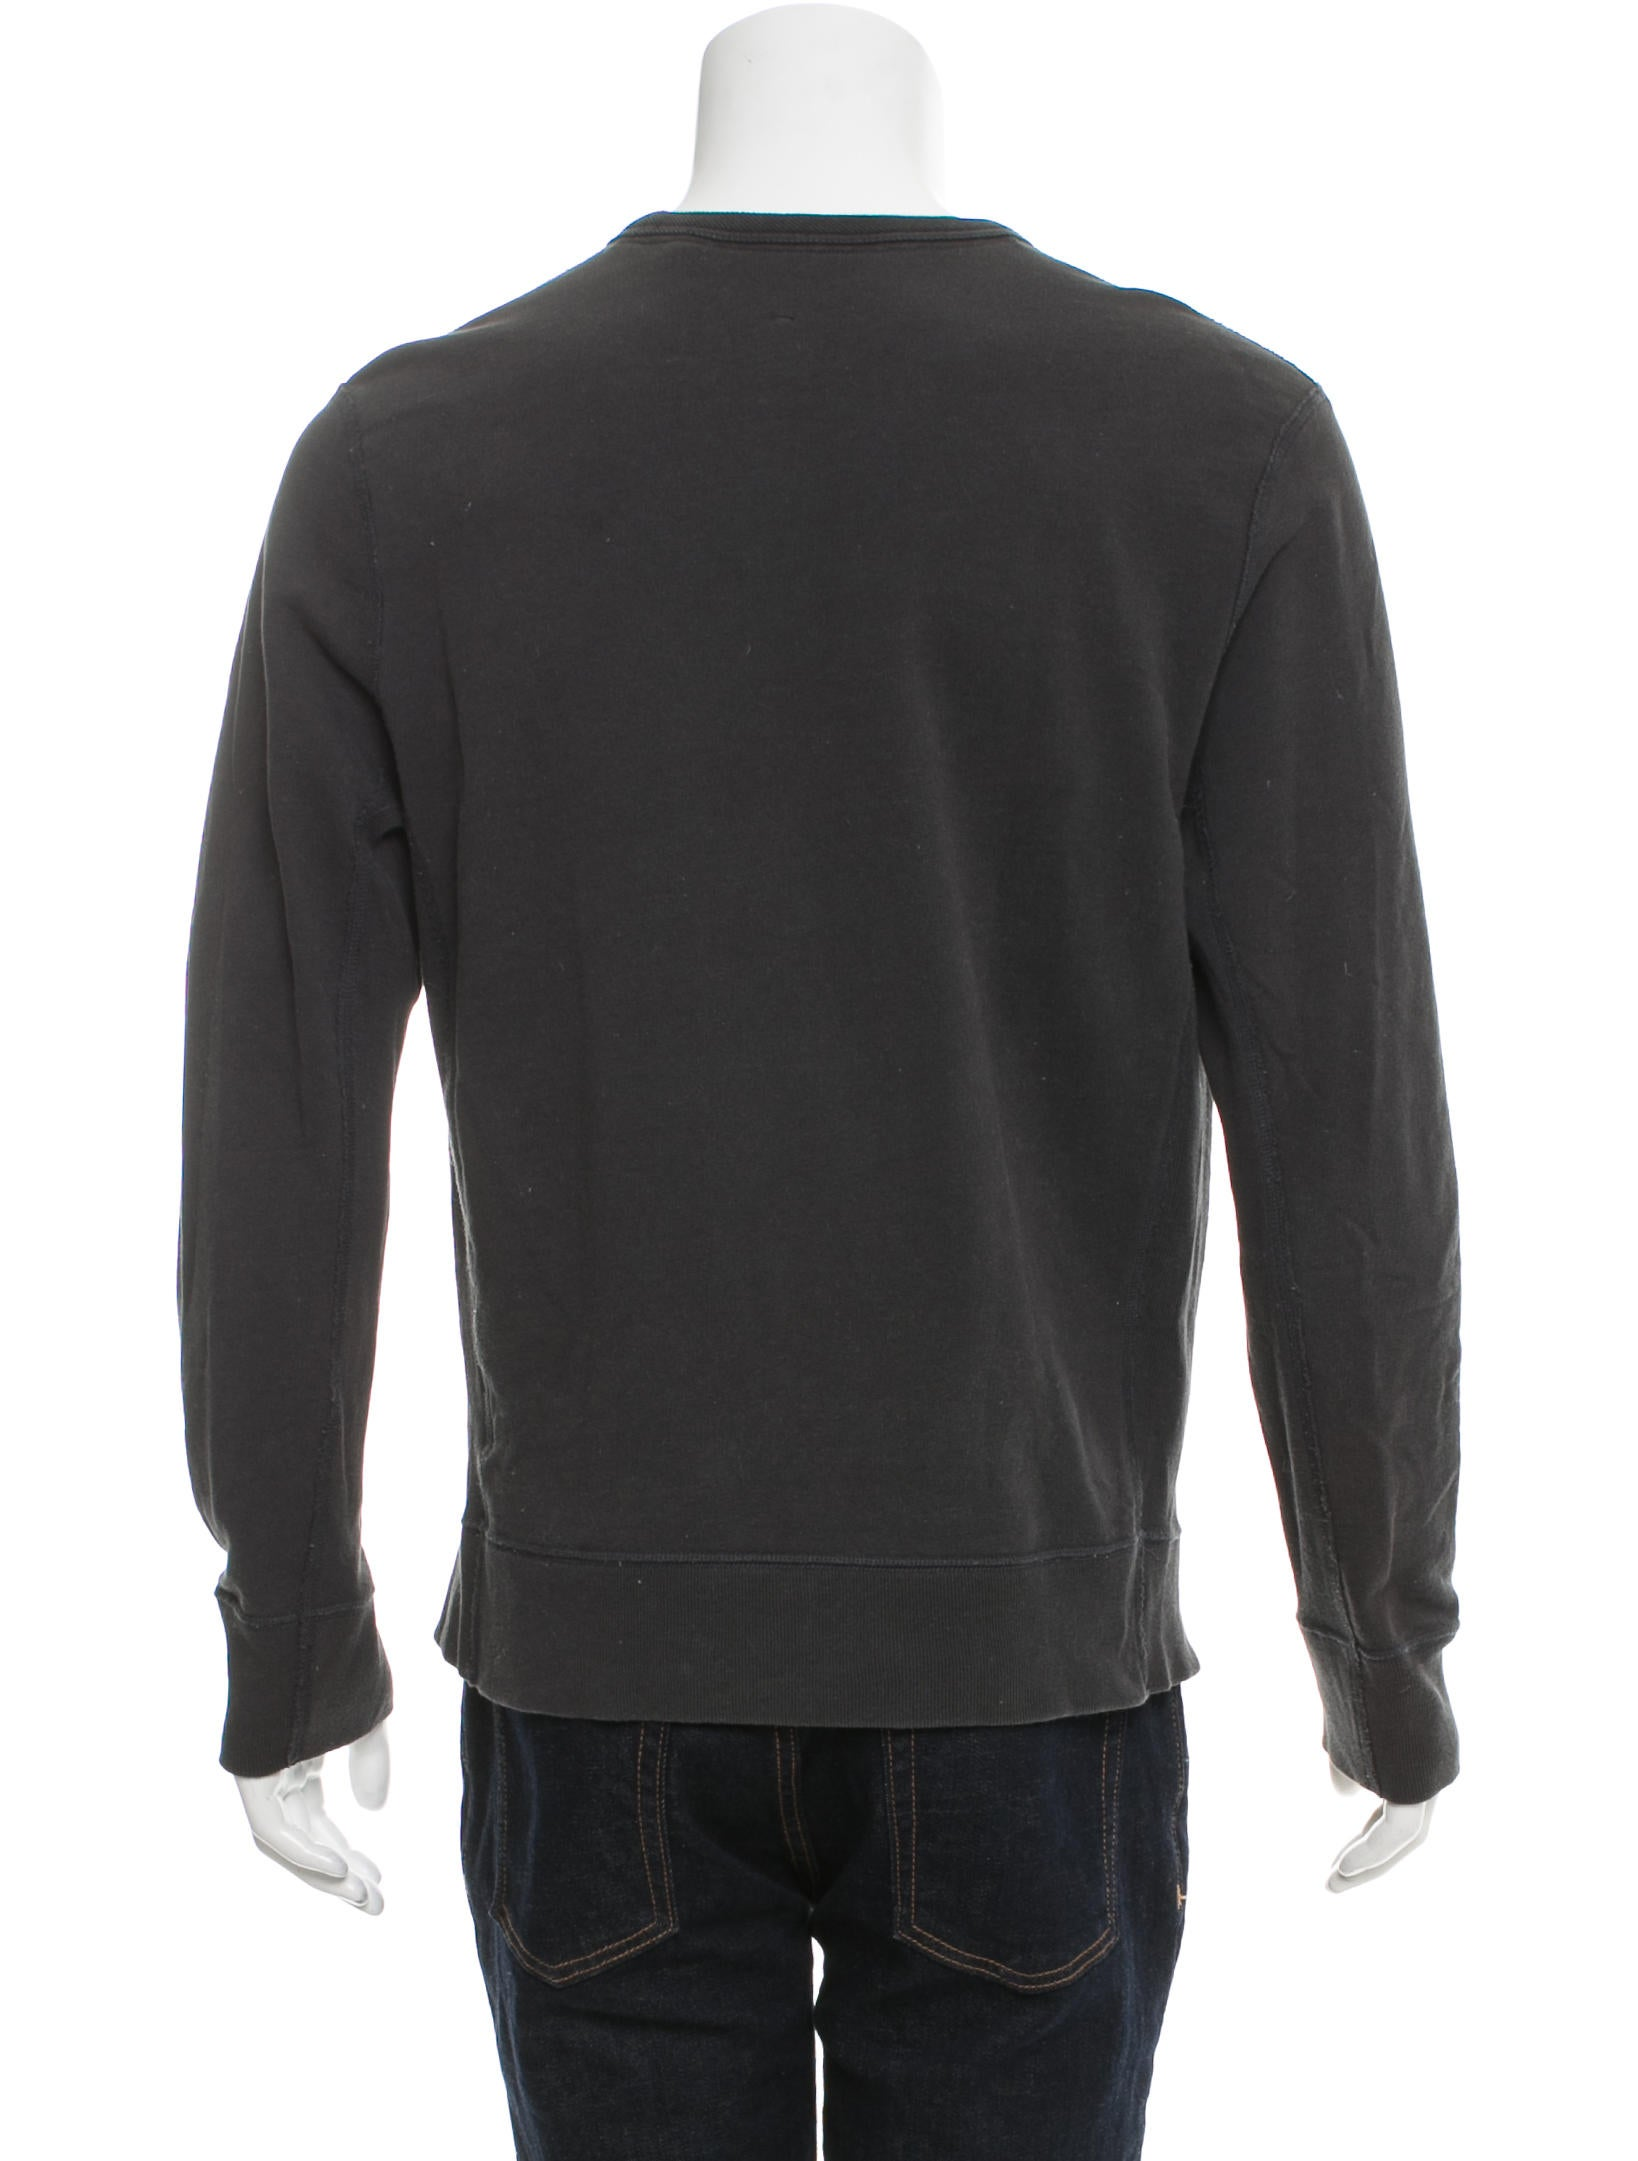 Find great deals on eBay for womens crew neck sweatshirt. Shop with confidence.